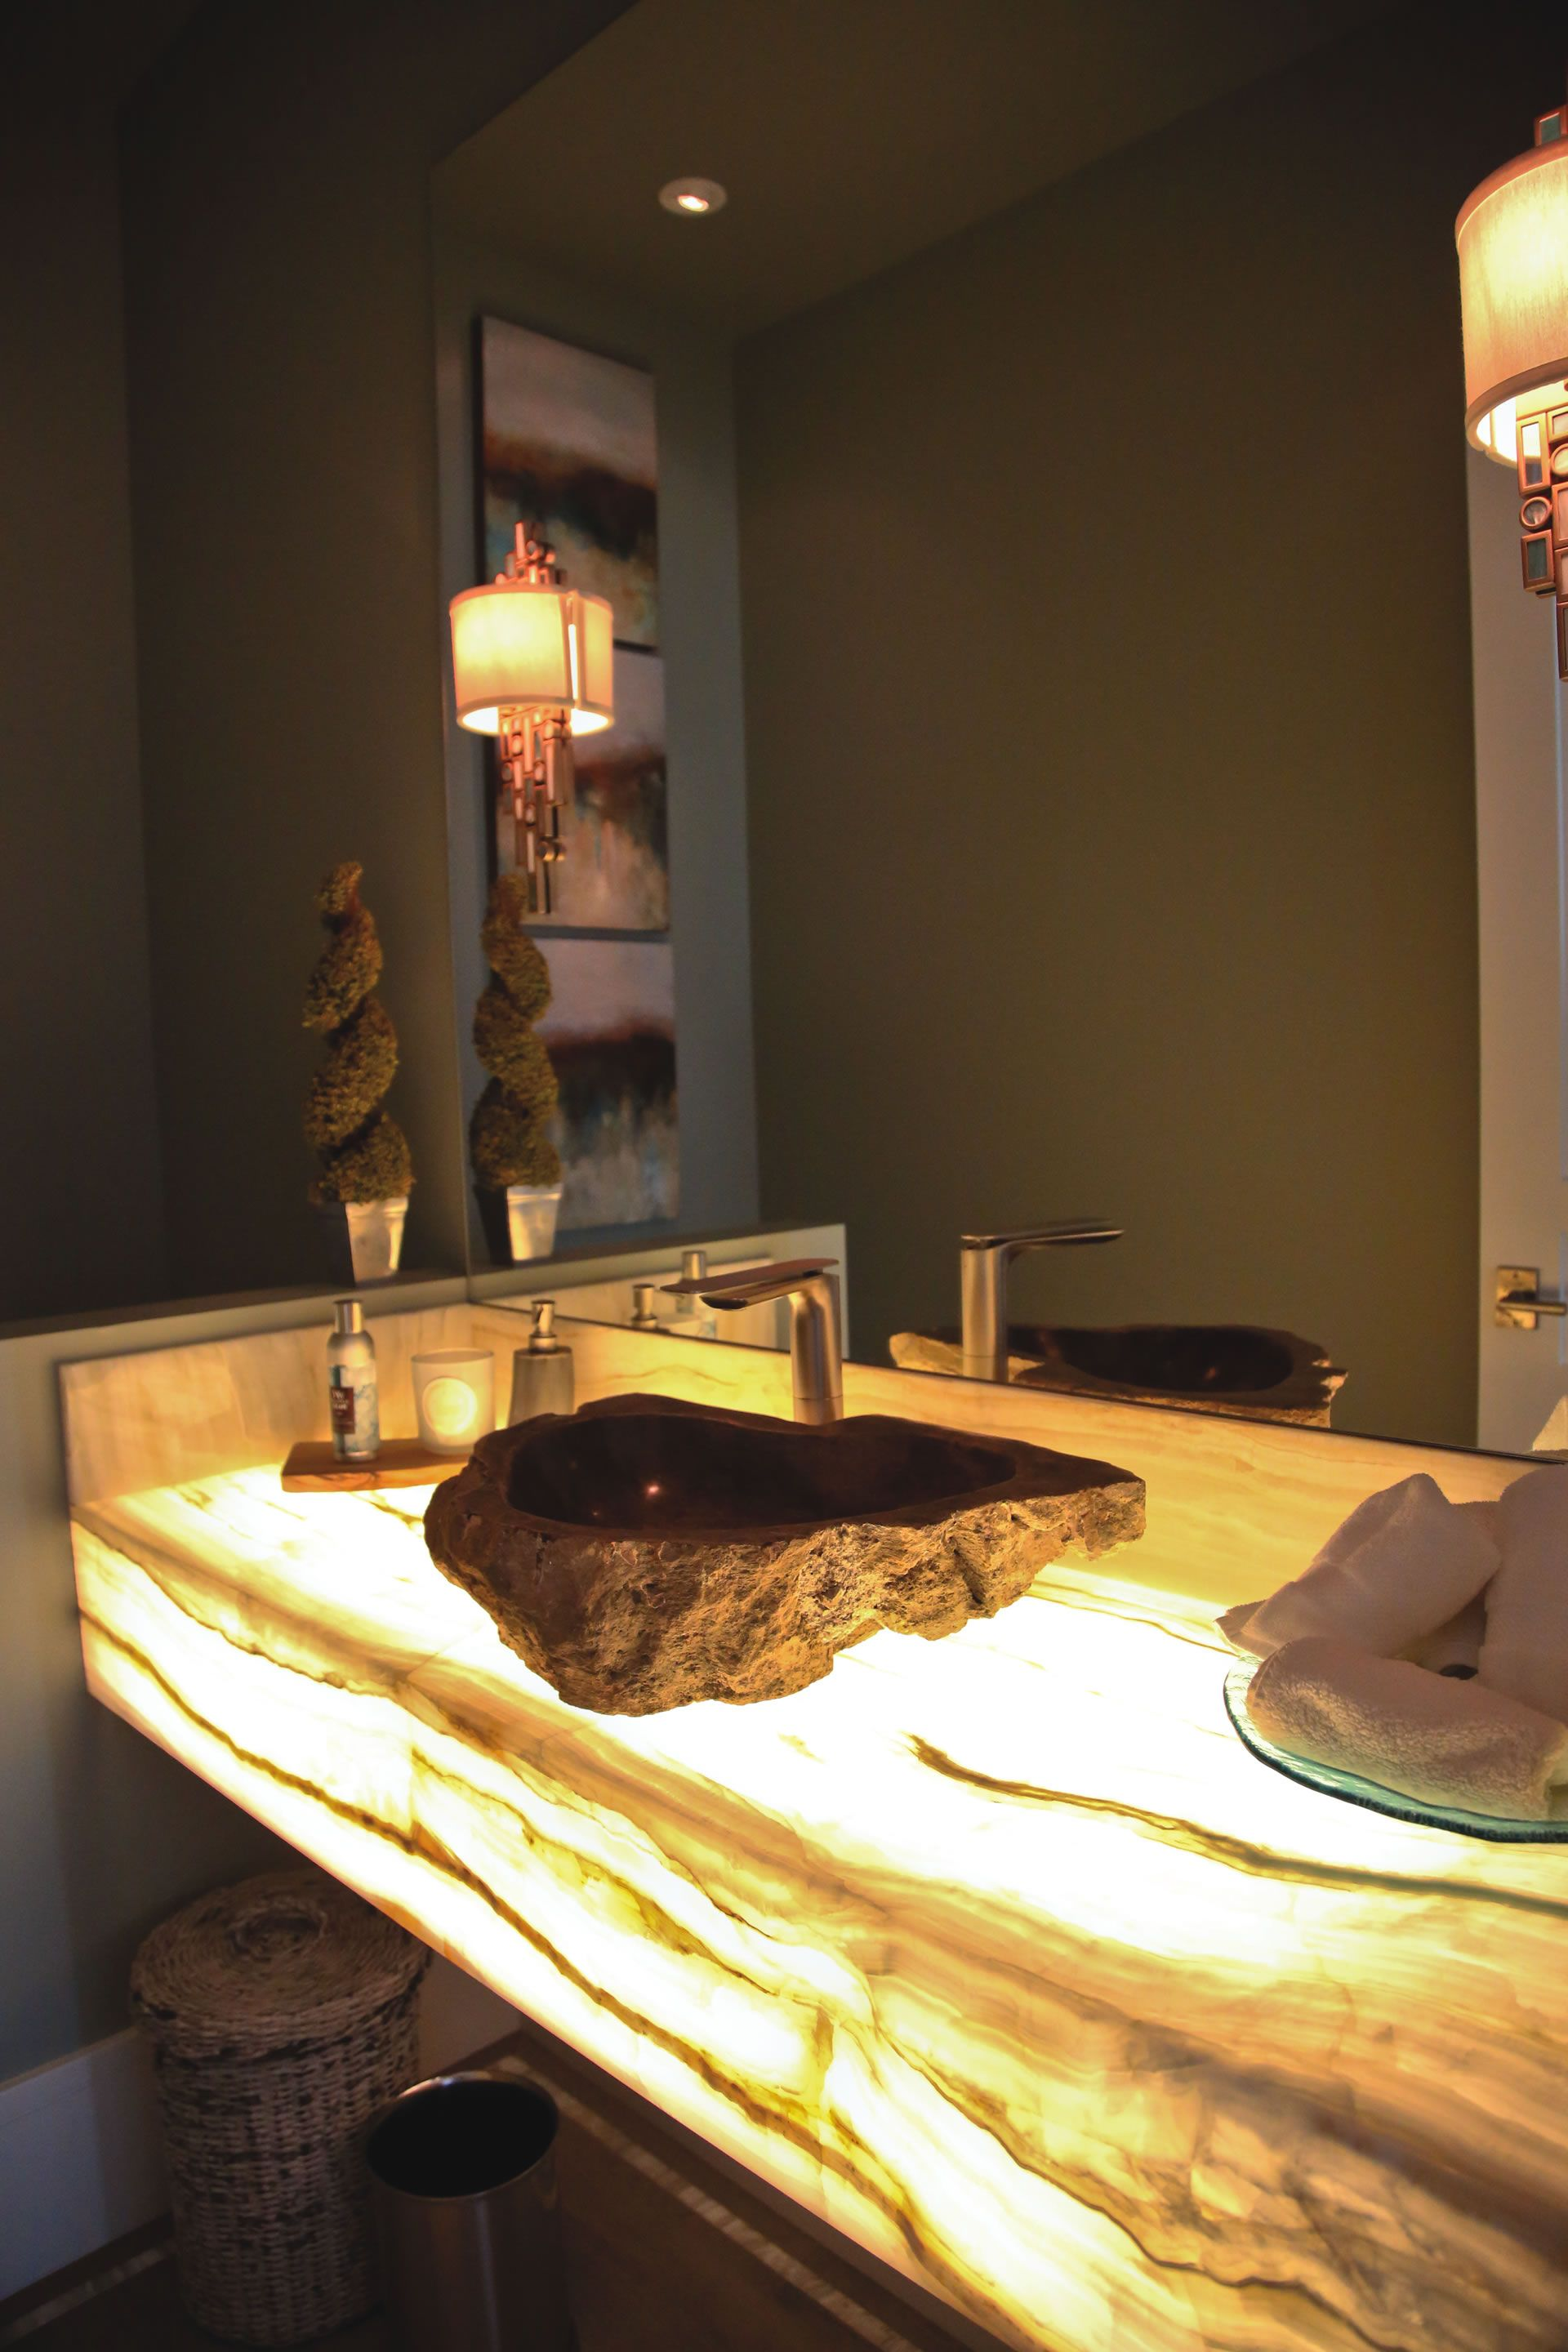 LED light shines through a white onyx countertop, illuminating the  petrified wood sink above it